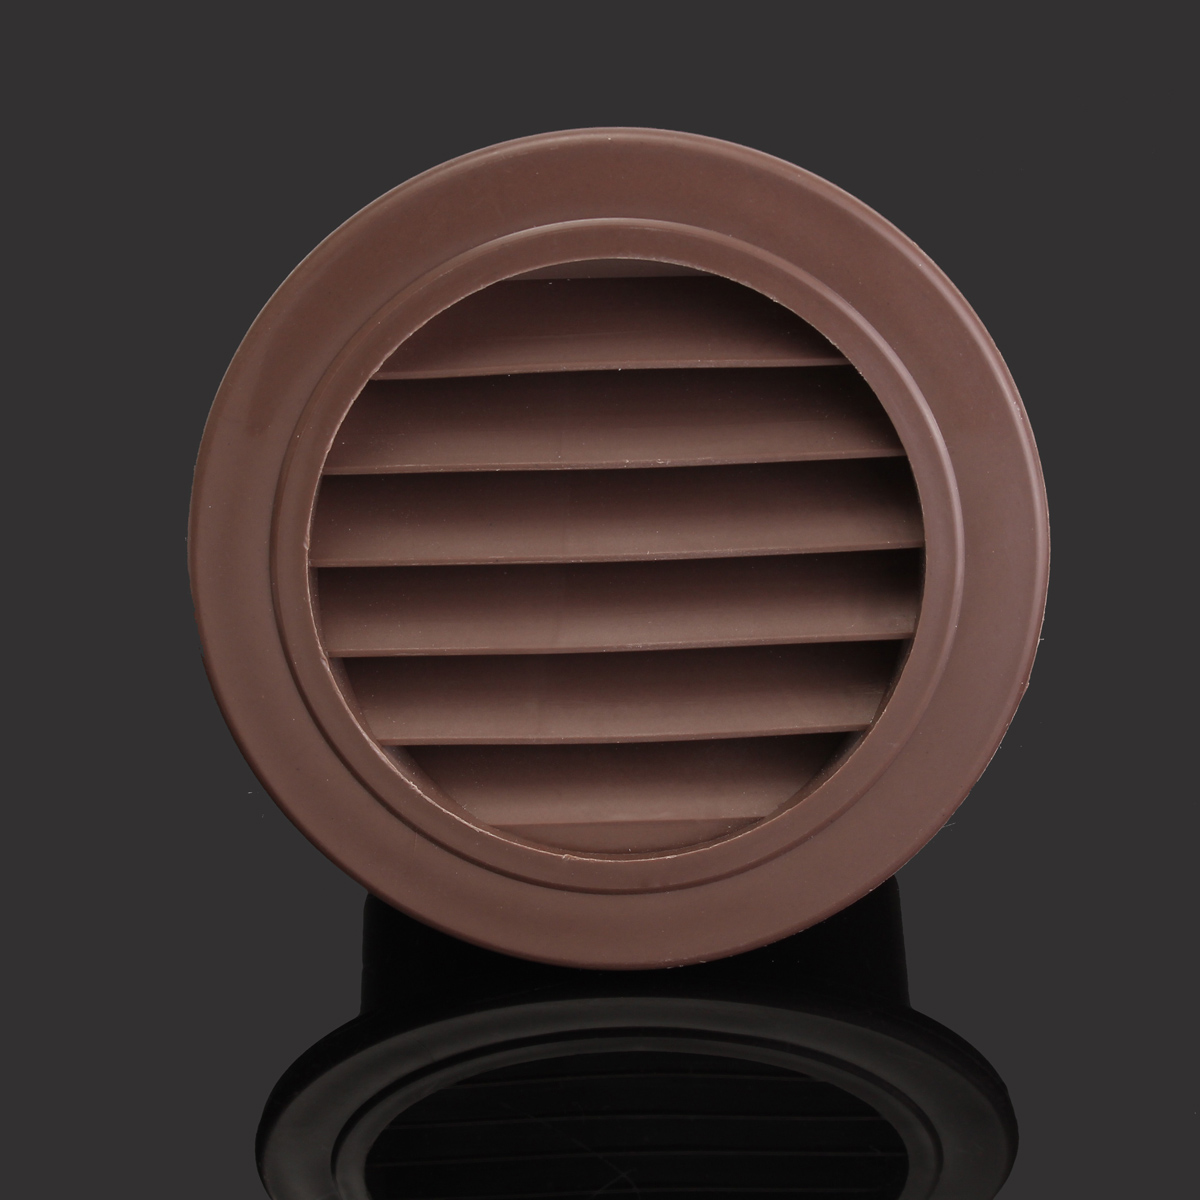 Round Air Vent ABS Louver Grille Cover PP Ventilation Grille Air Grille 100mm